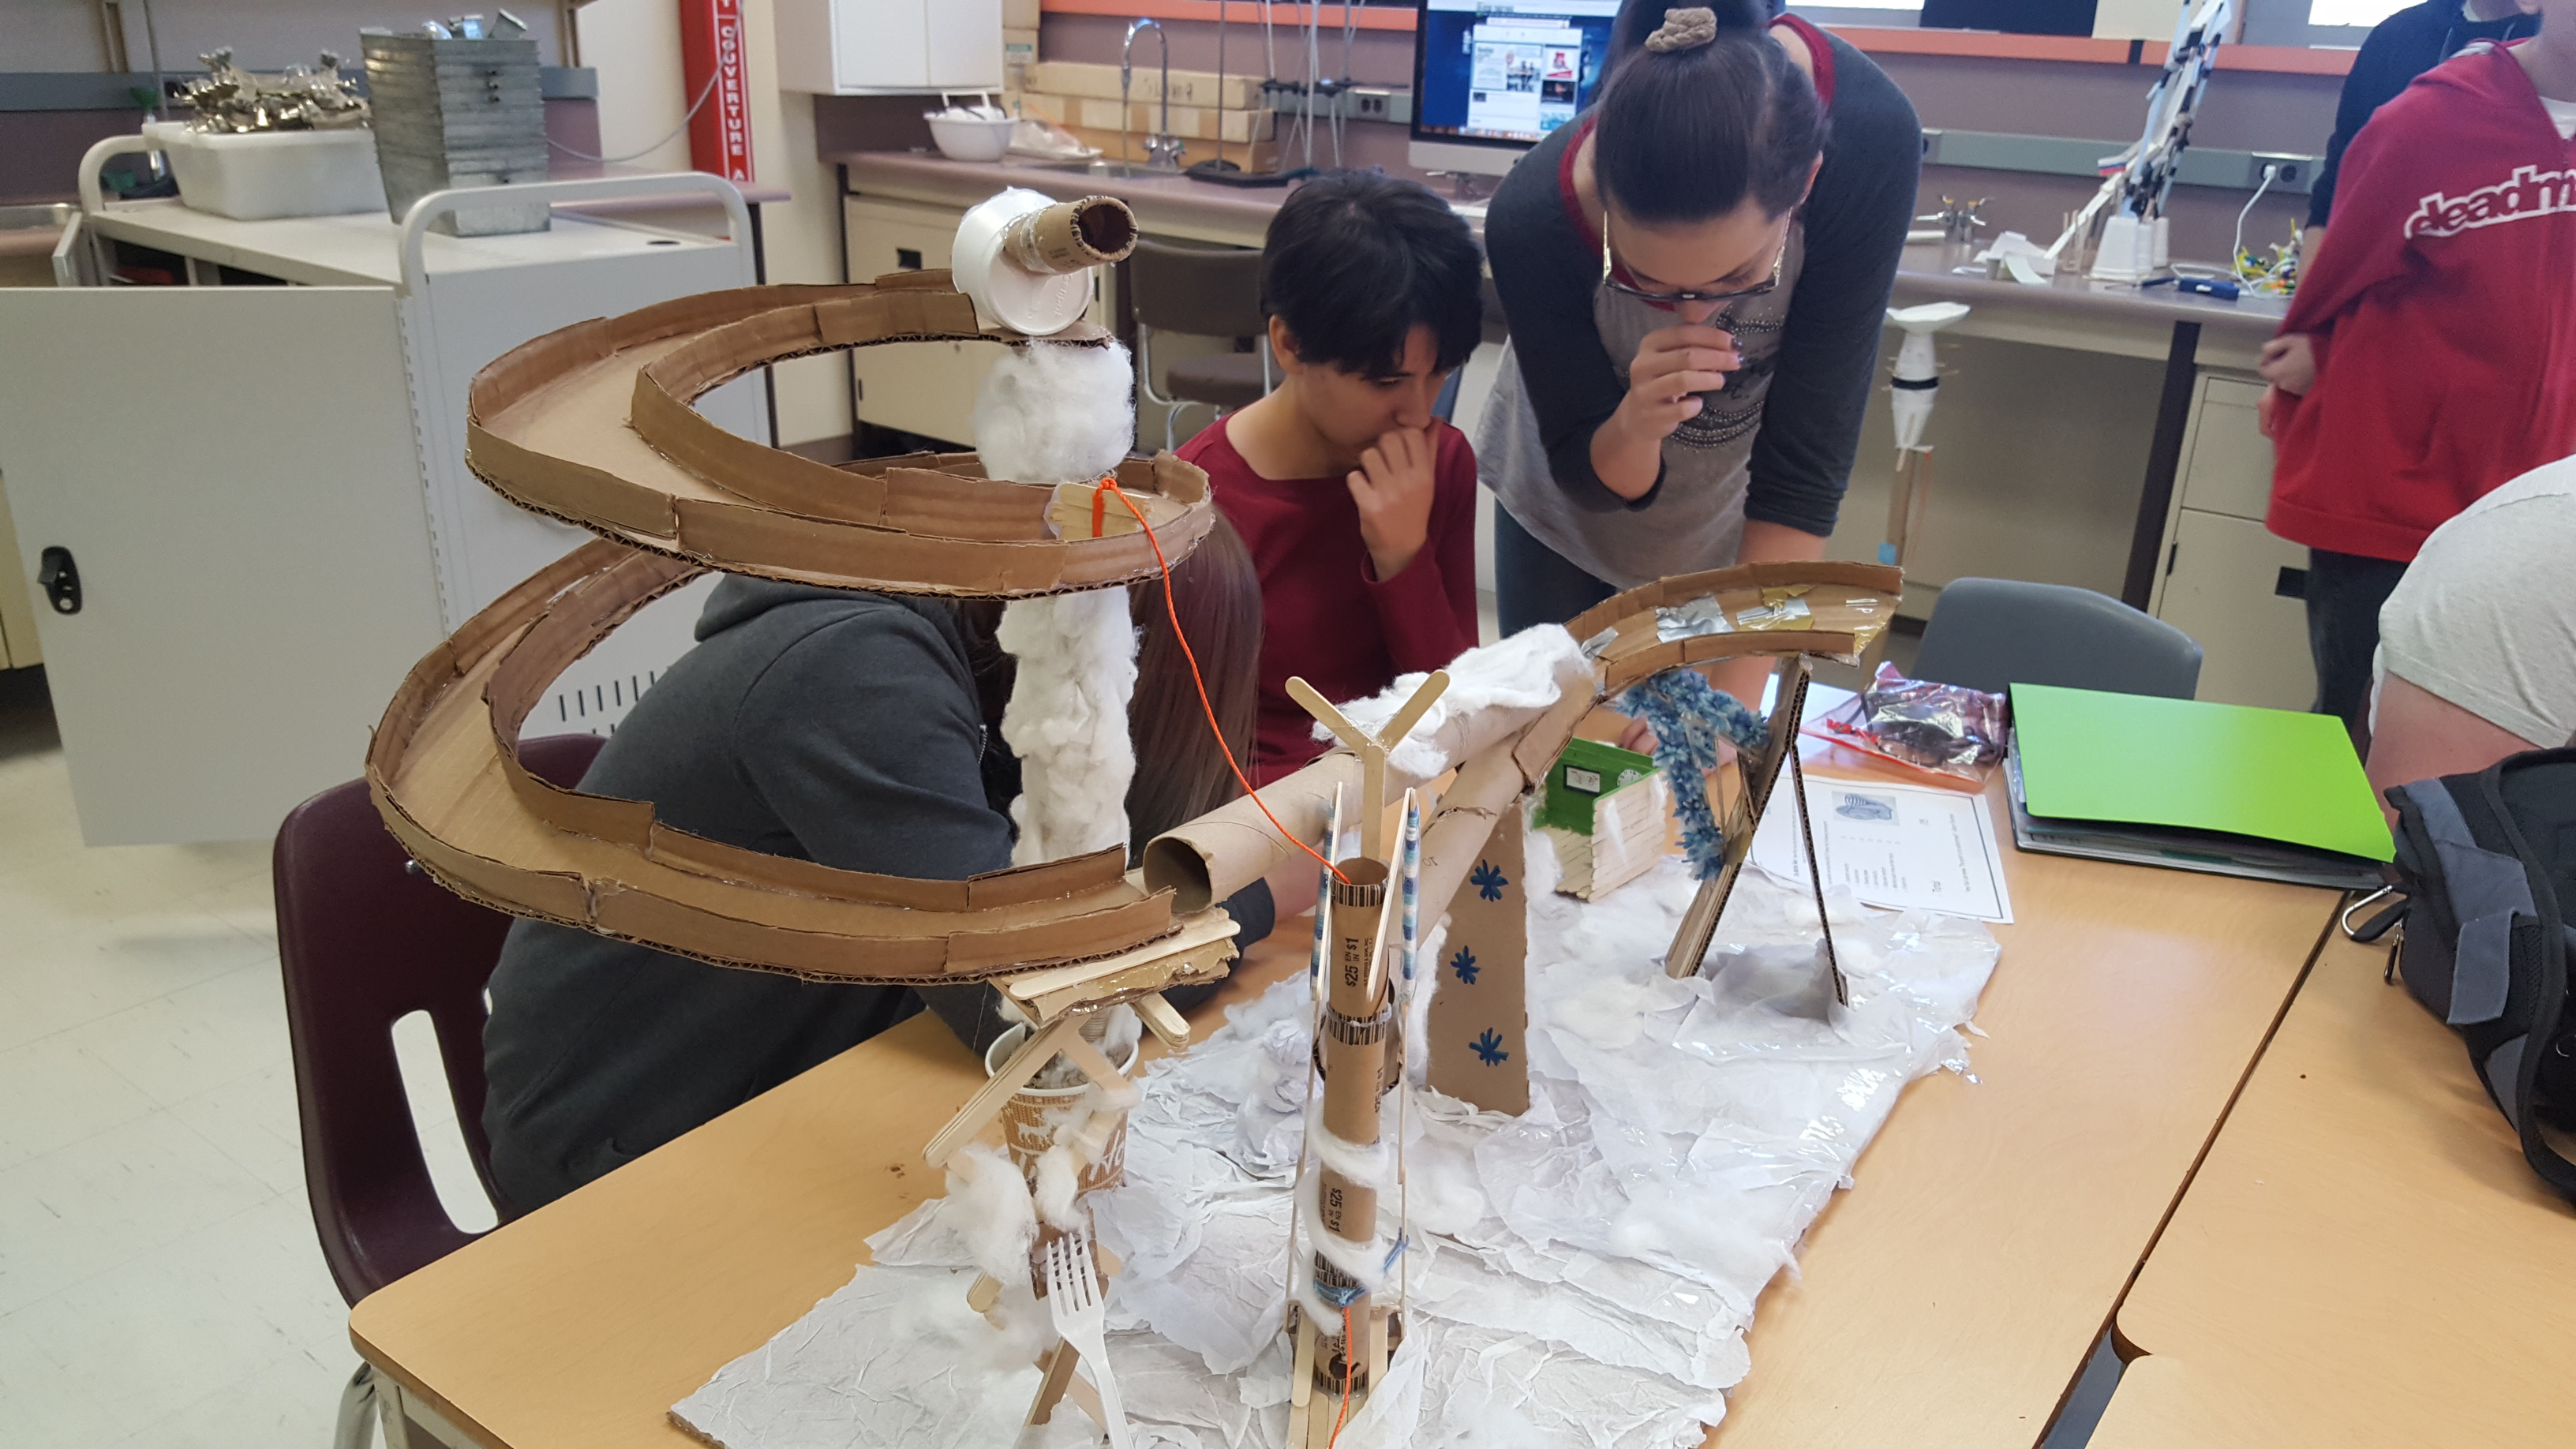 PBL: Marble run project with physics emphasis